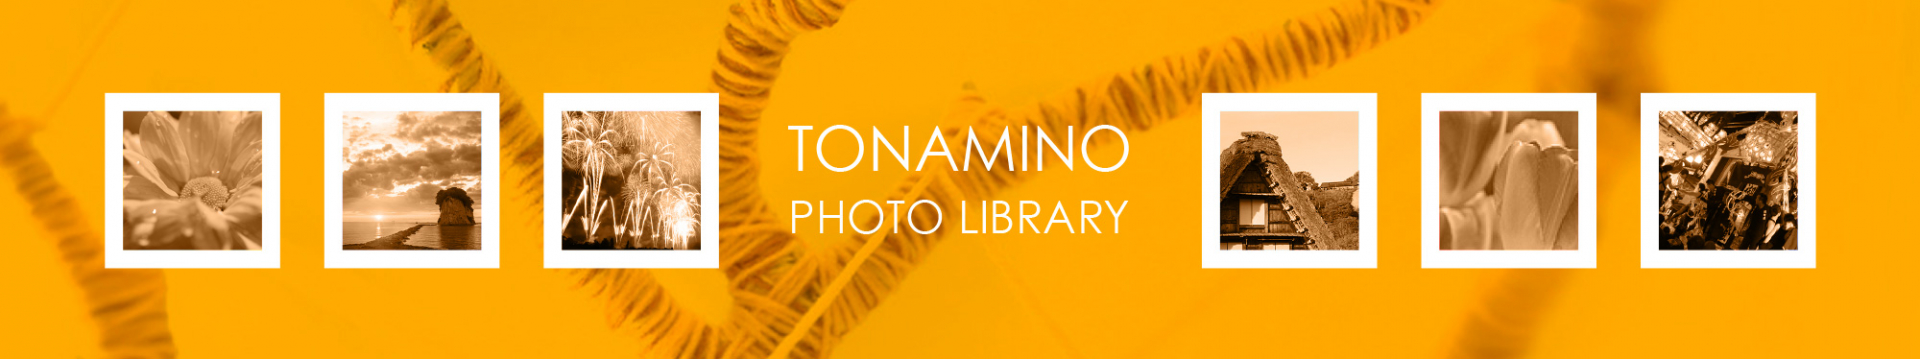 TONAMINO PHOTO LIBRARY